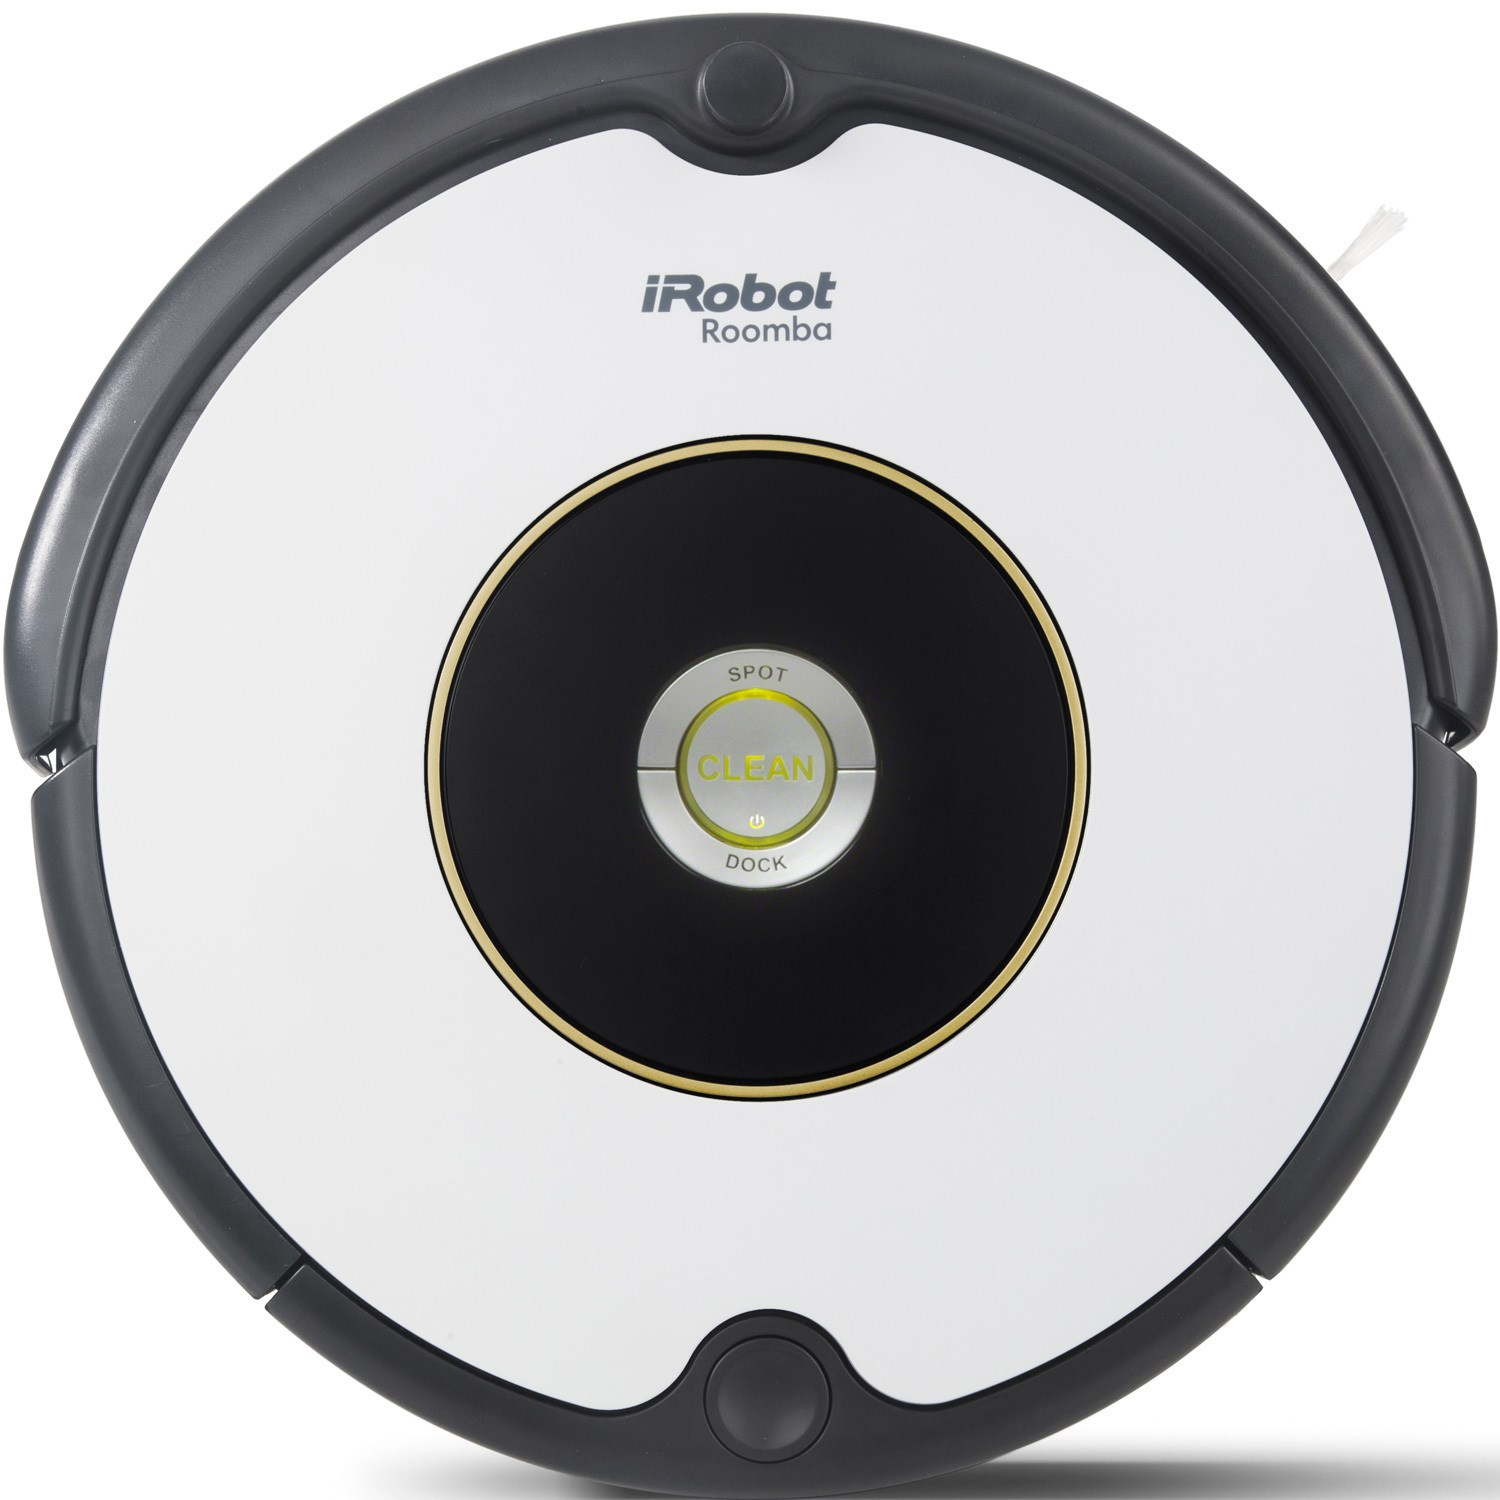 Image Is Loading IRobot Roomba605 Robot Vacuum Cleaner With Enhanced Xlife